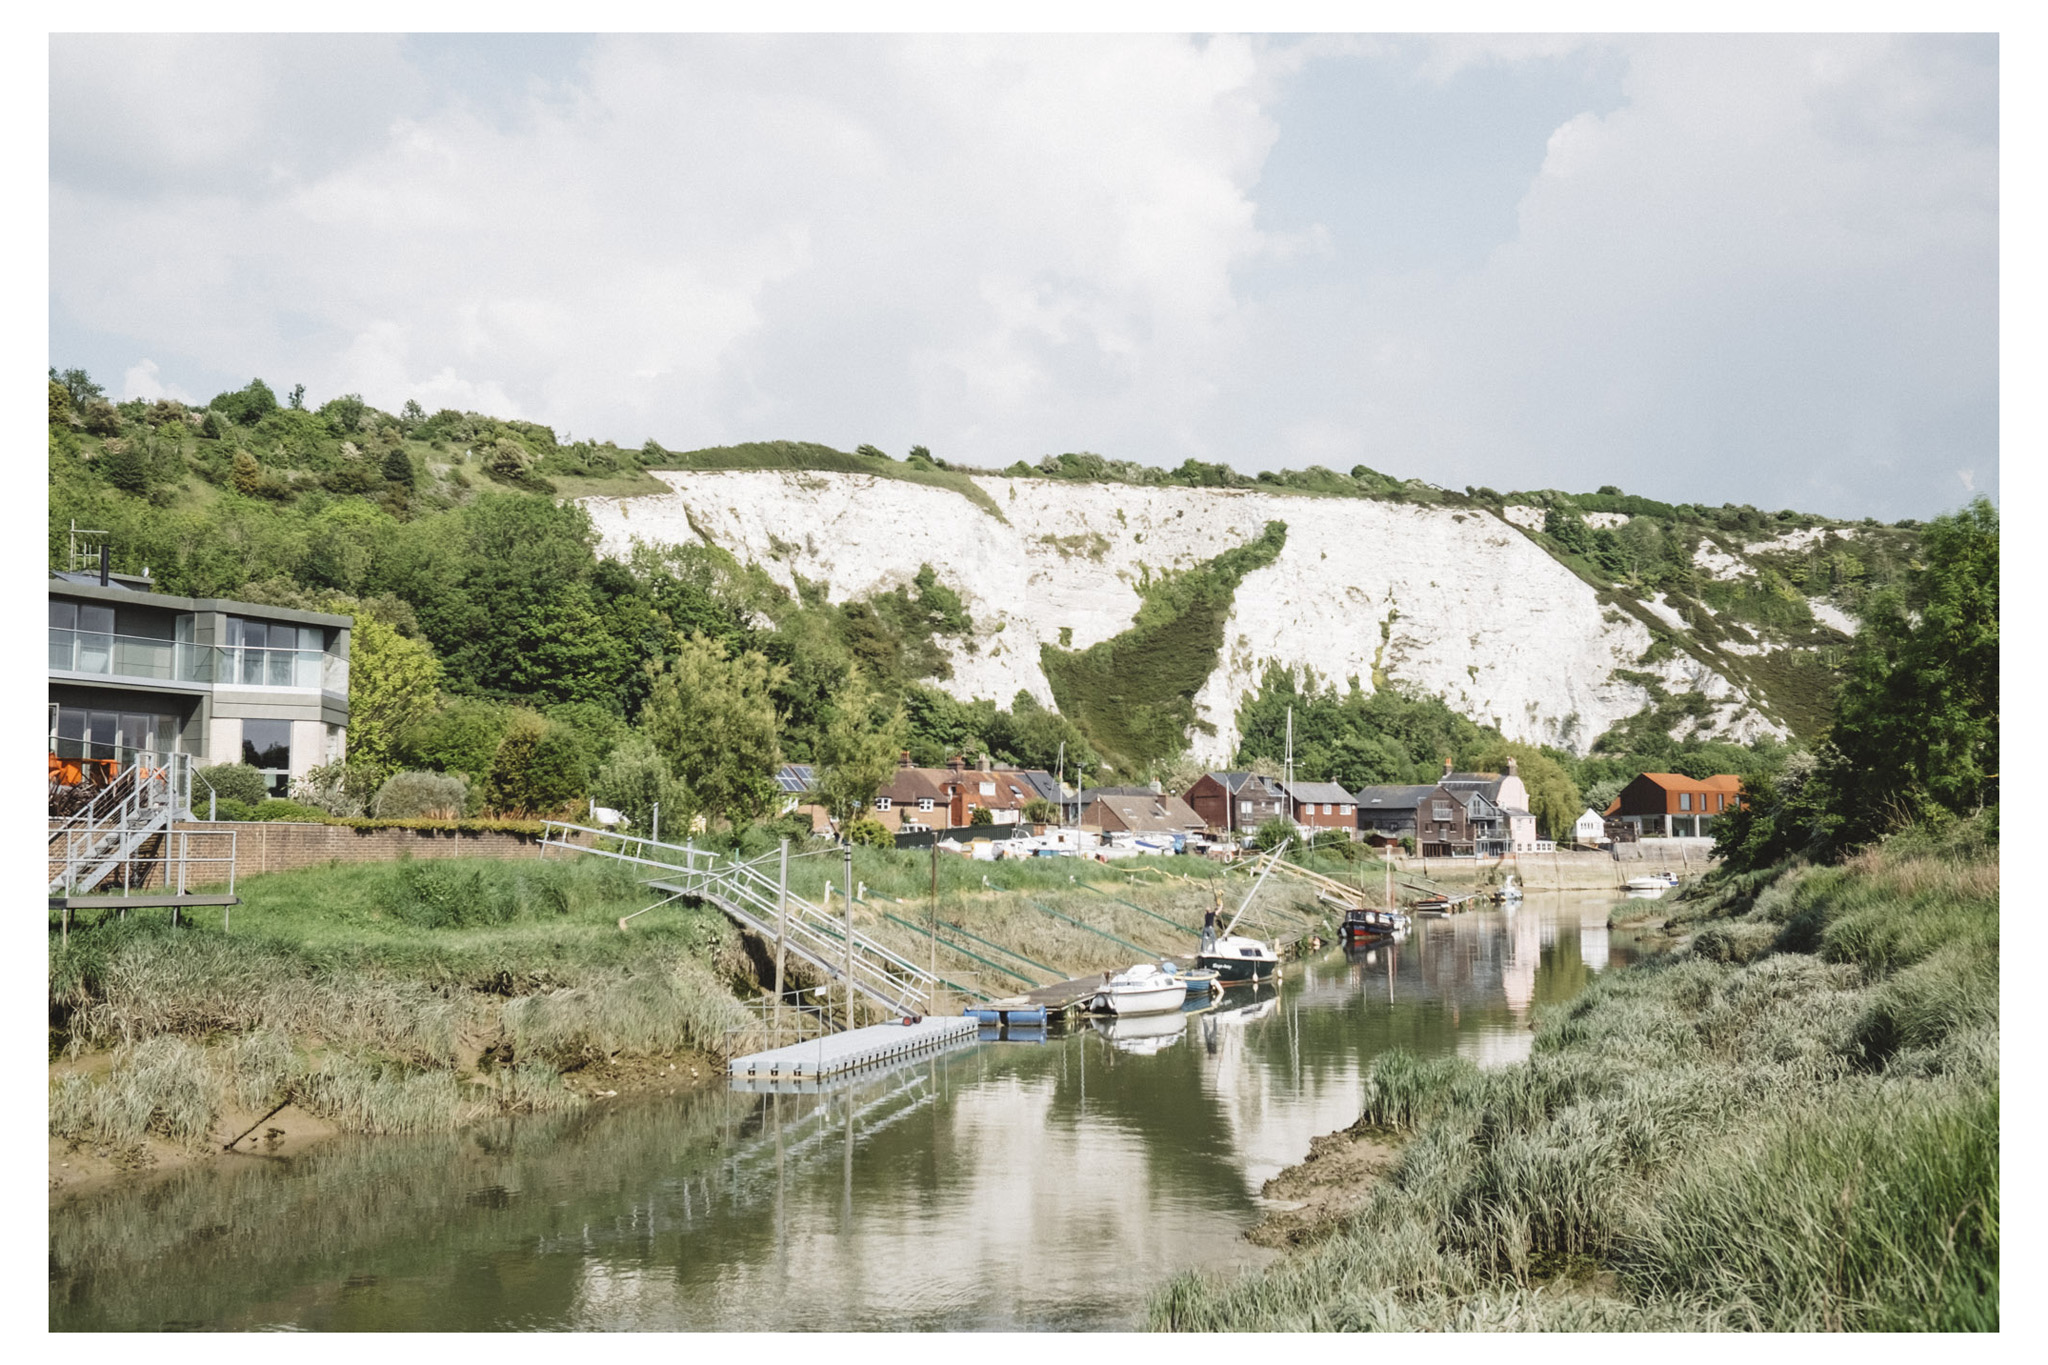 The Railway Land in Lewes is a Sussex wonder! With so much to see and a peaceful place to sit it should definitely be on your radar.